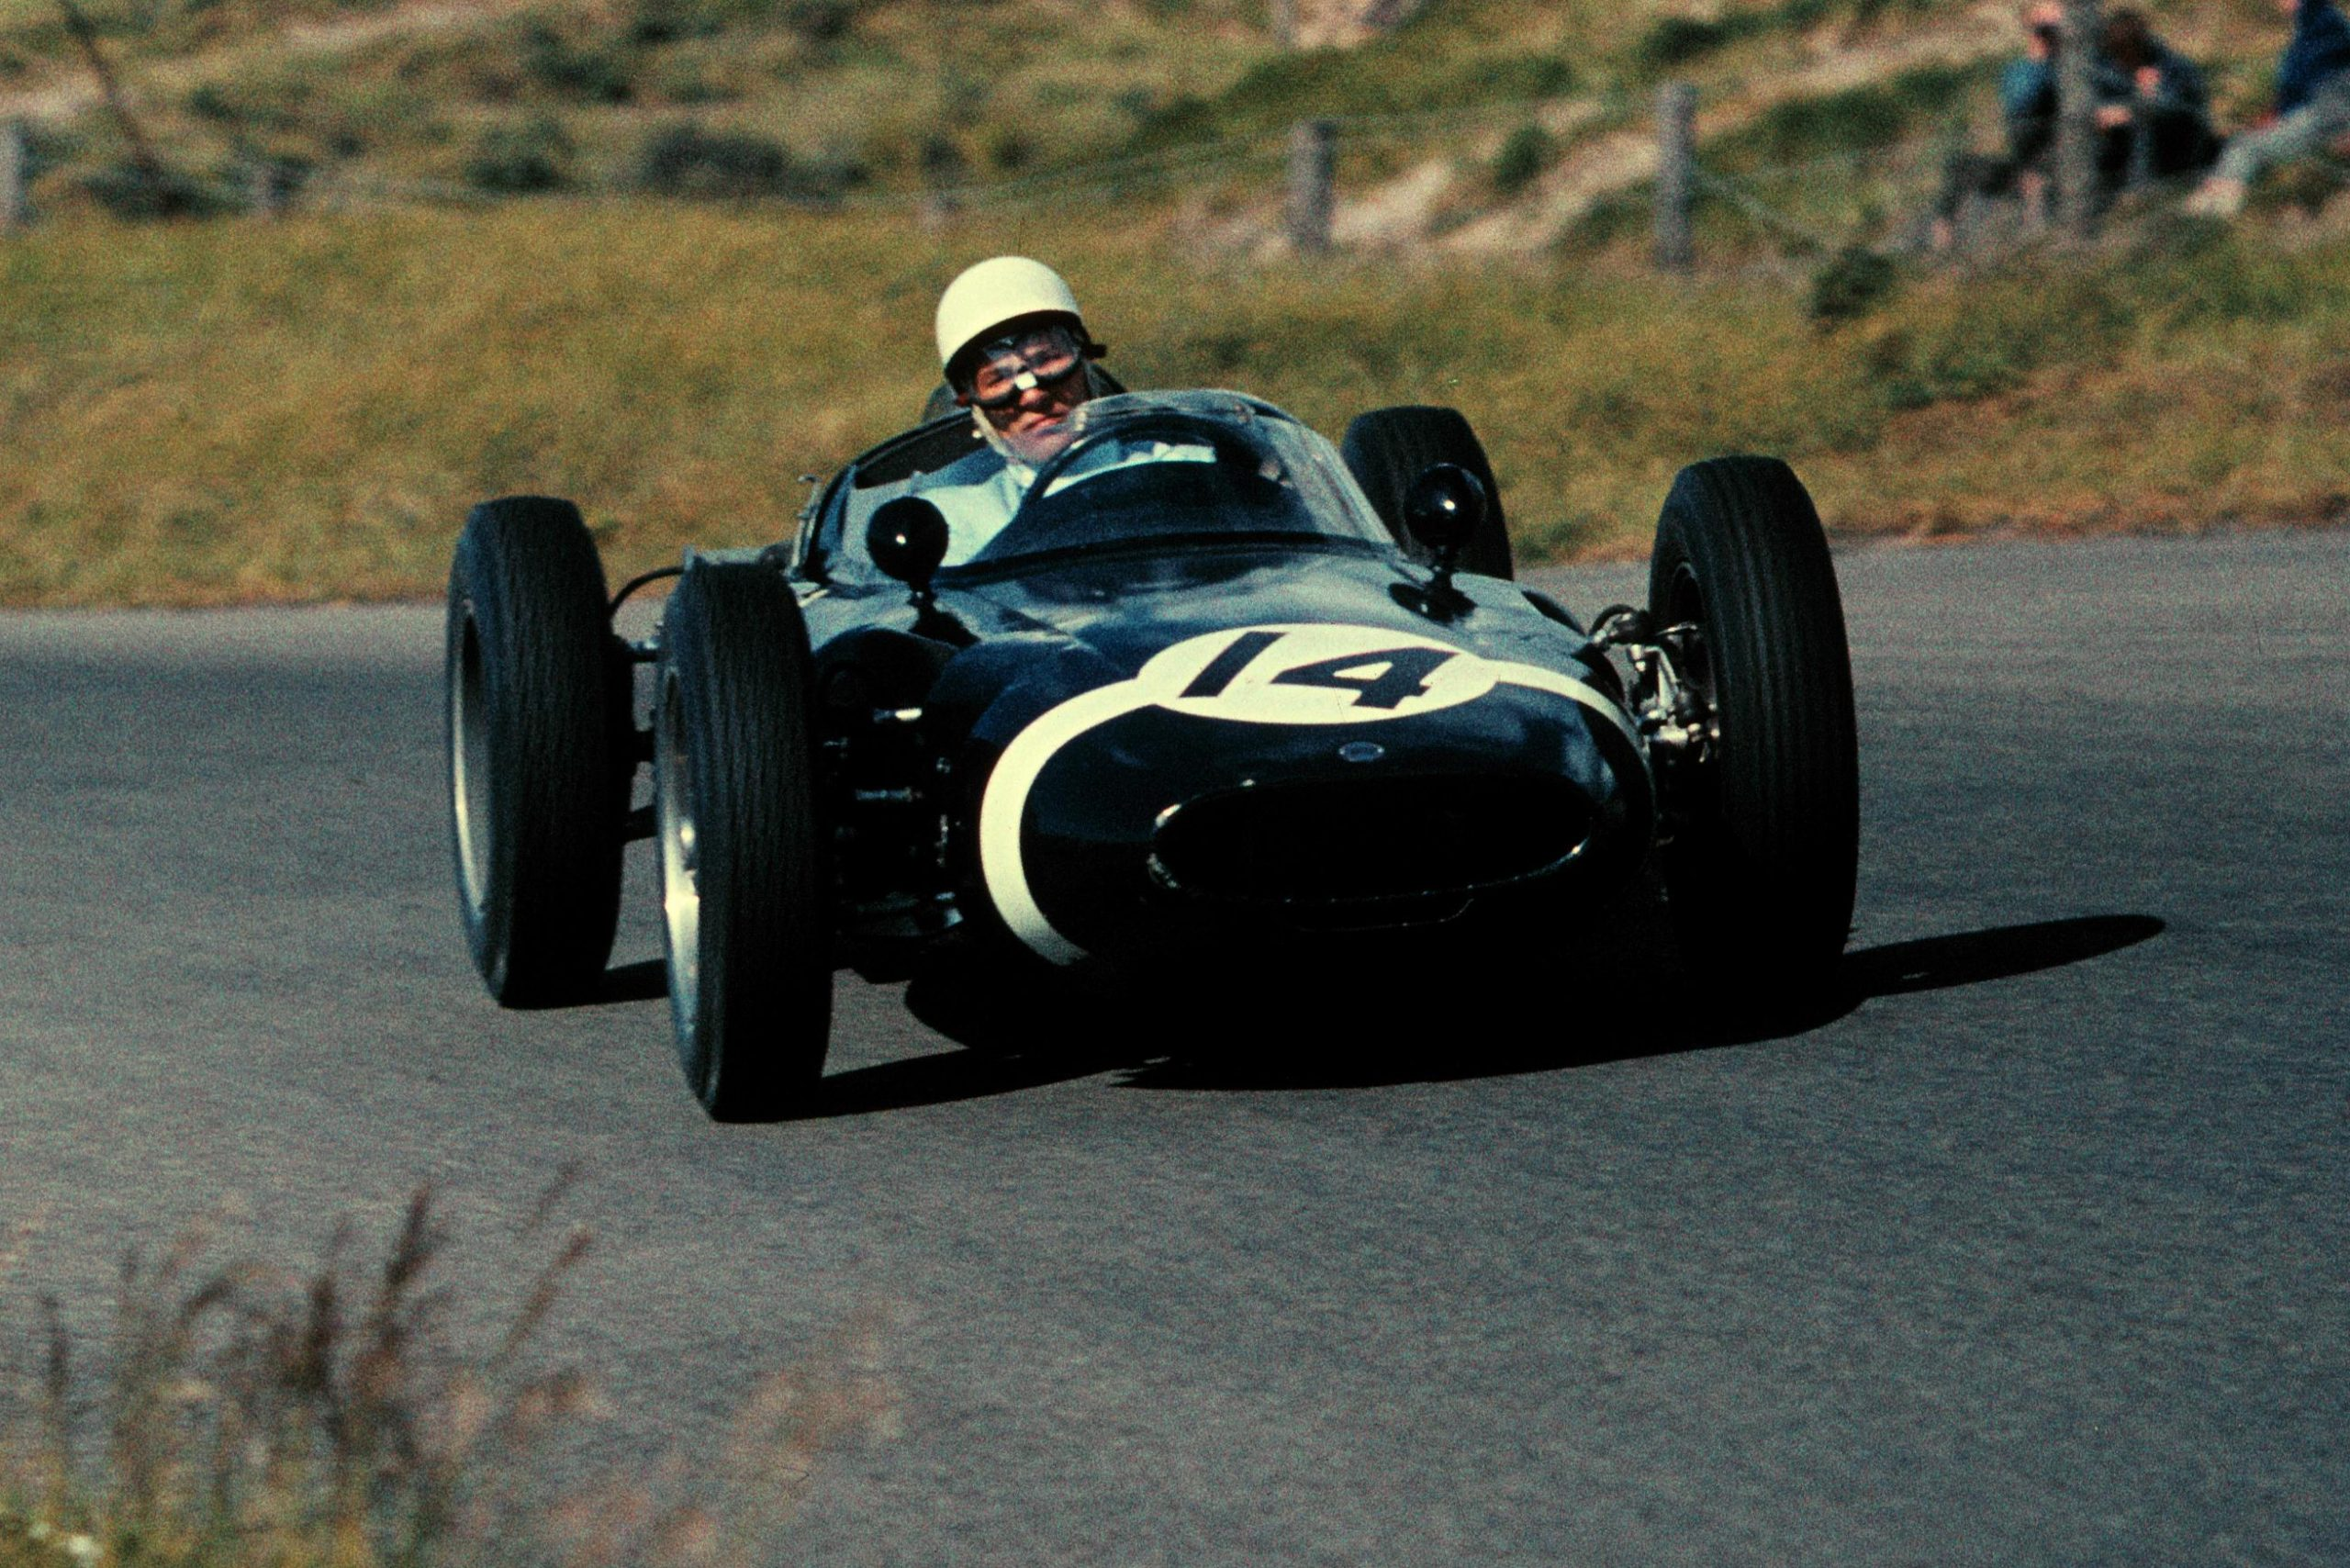 Stirling Moss driving a Lotus 18 to 4th place.